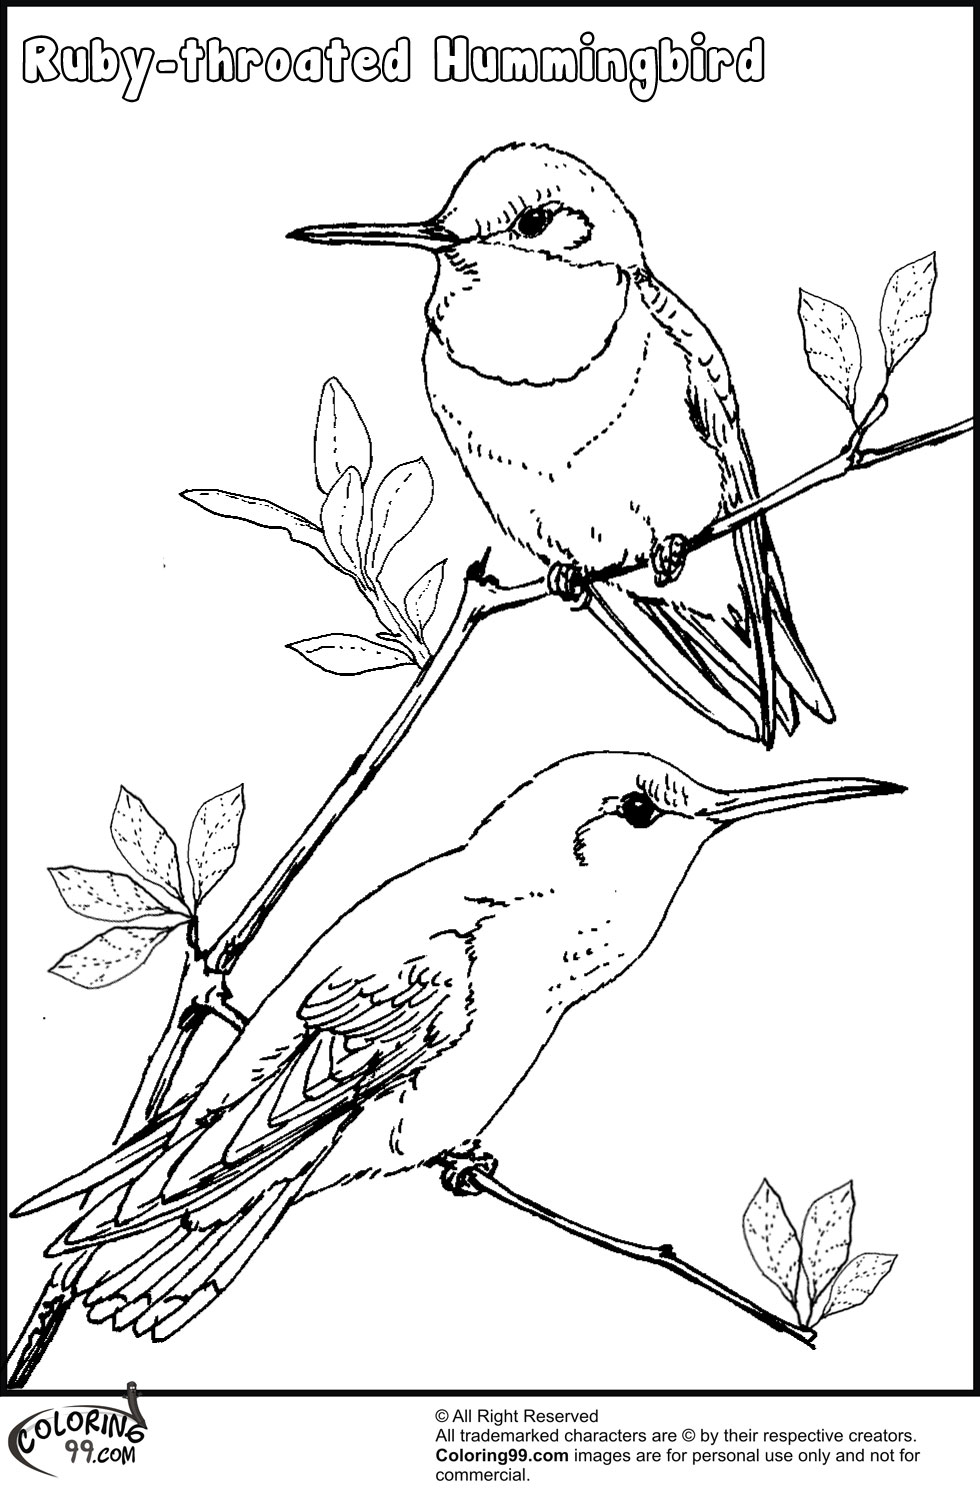 hummingbird pictures to color get this free hummingbird coloring pages 34753 pictures color hummingbird to